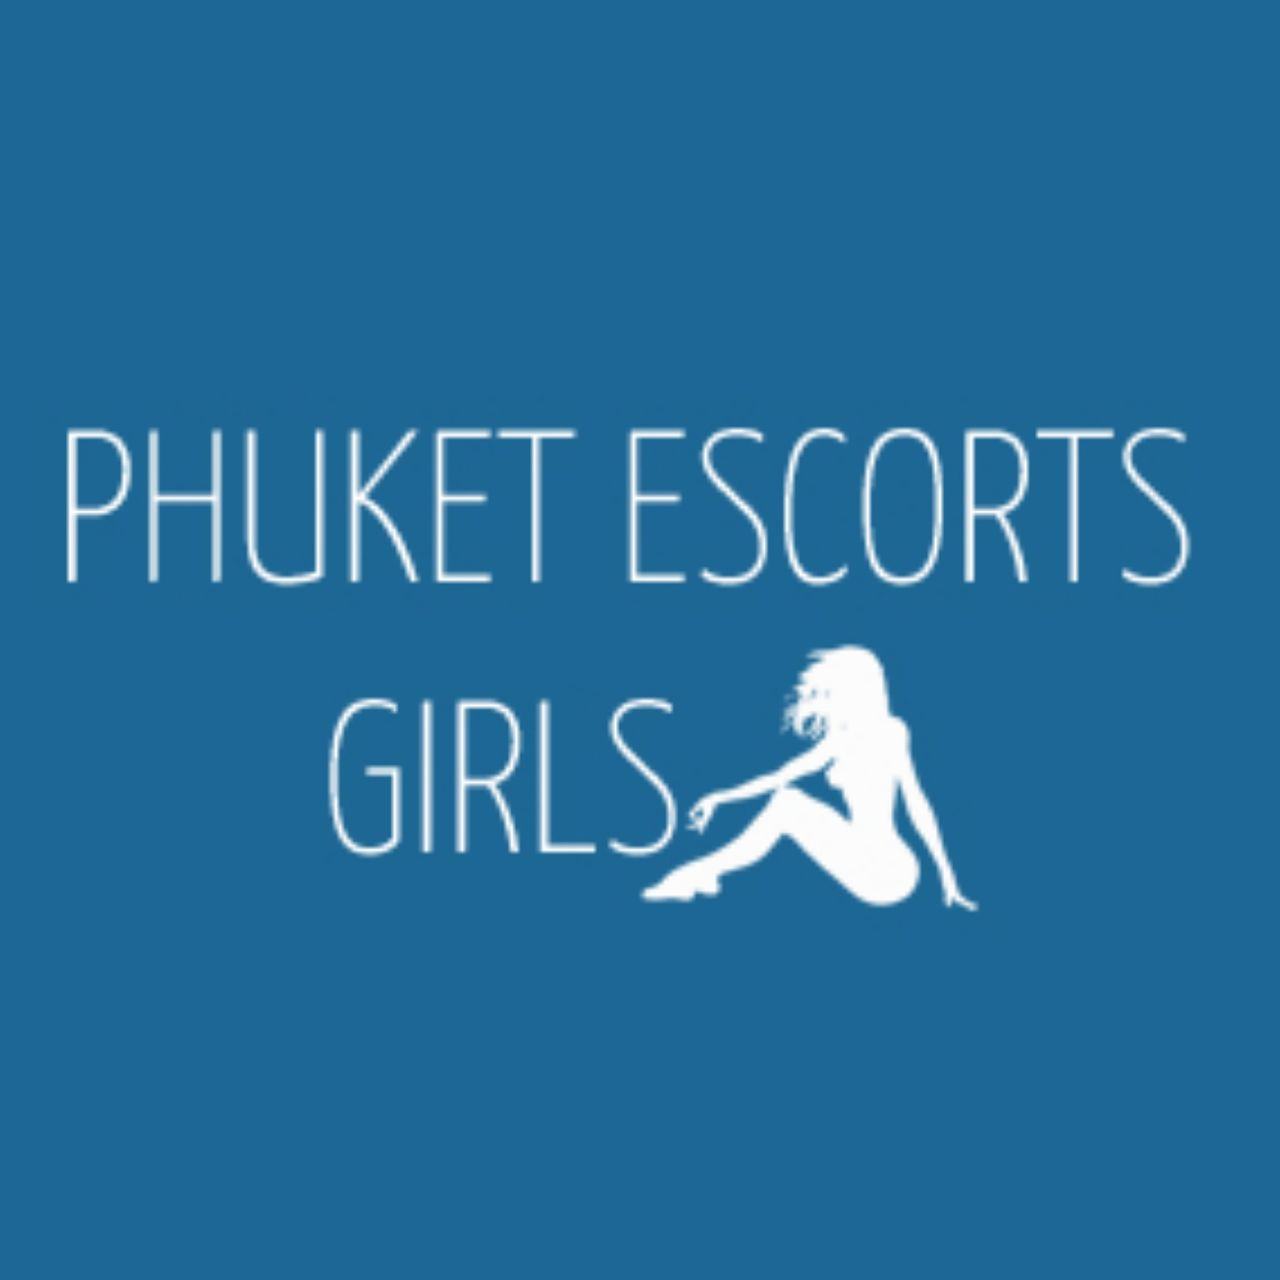 Phuket Escorts Girls